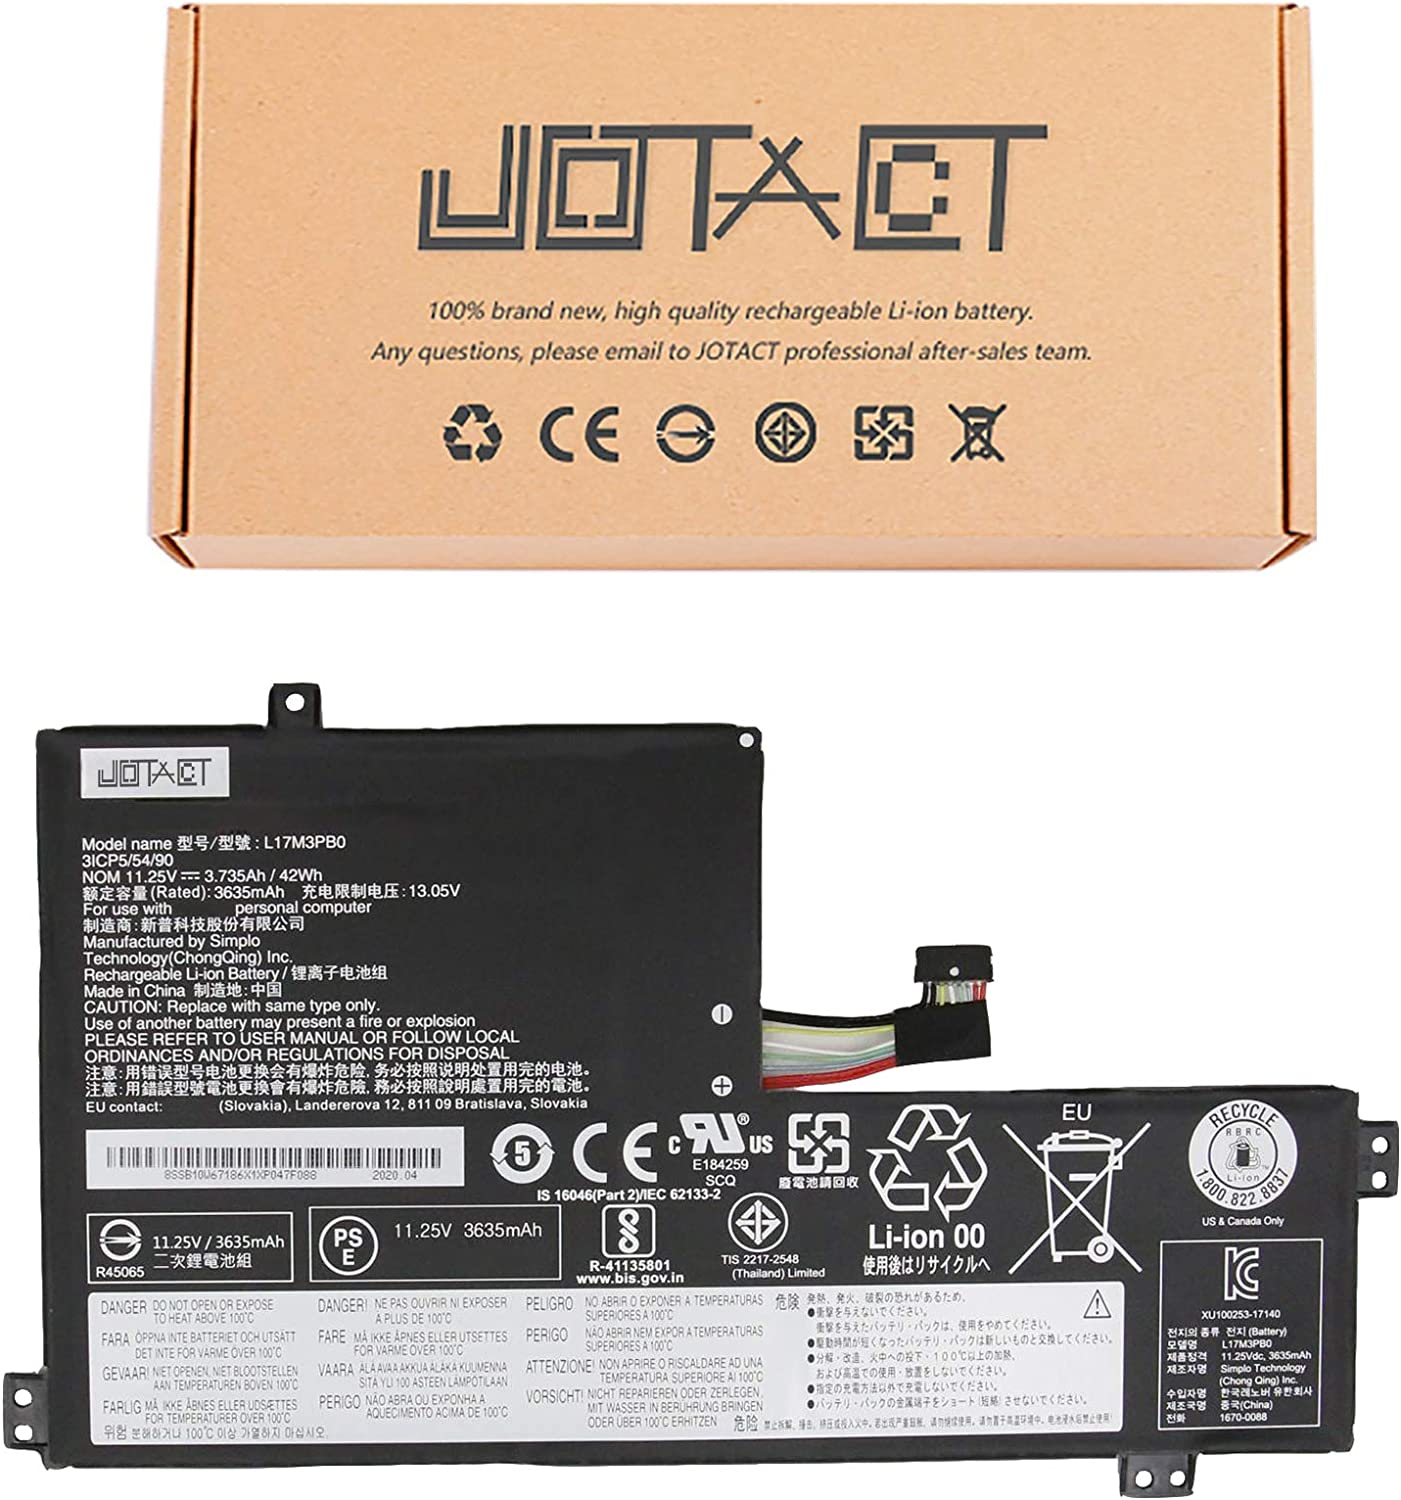 JOTACT L17M3PB0 Laptop Rare Battery with Chromebook Compatible Lenovo Free shipping on posting reviews